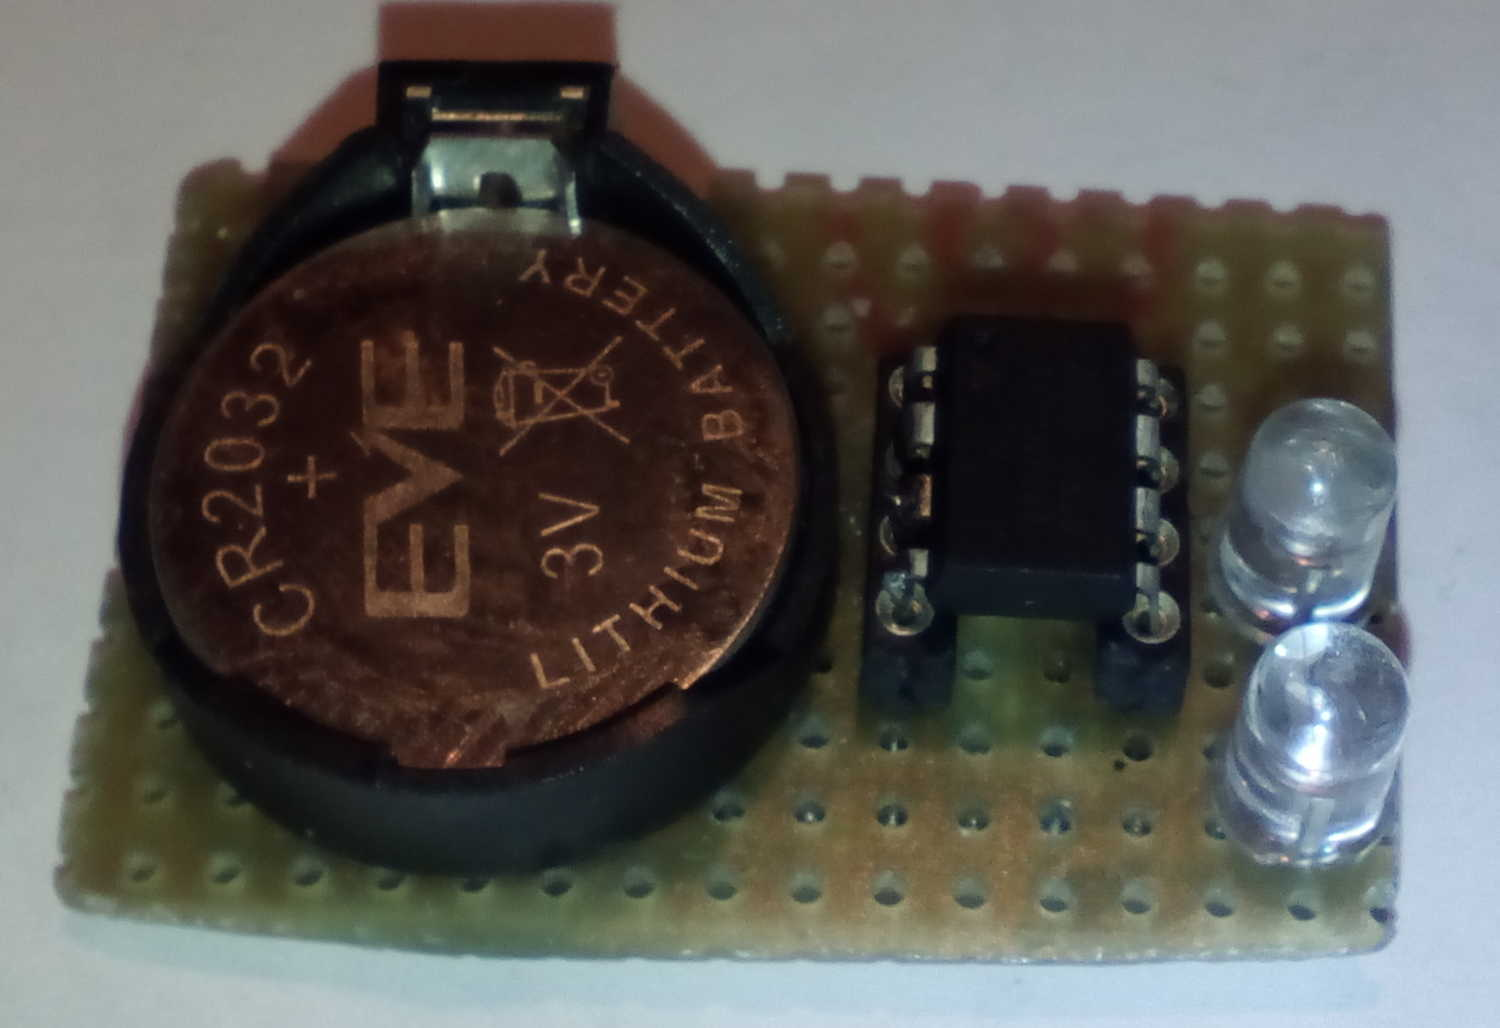 Tefatronix Low Power Led Flasher Single Circuit Prototype Parts R1 R2 C1 Are Mounted On The Underside Smd Were Used 2 Version Flashing Alternately Click For Full Resolution